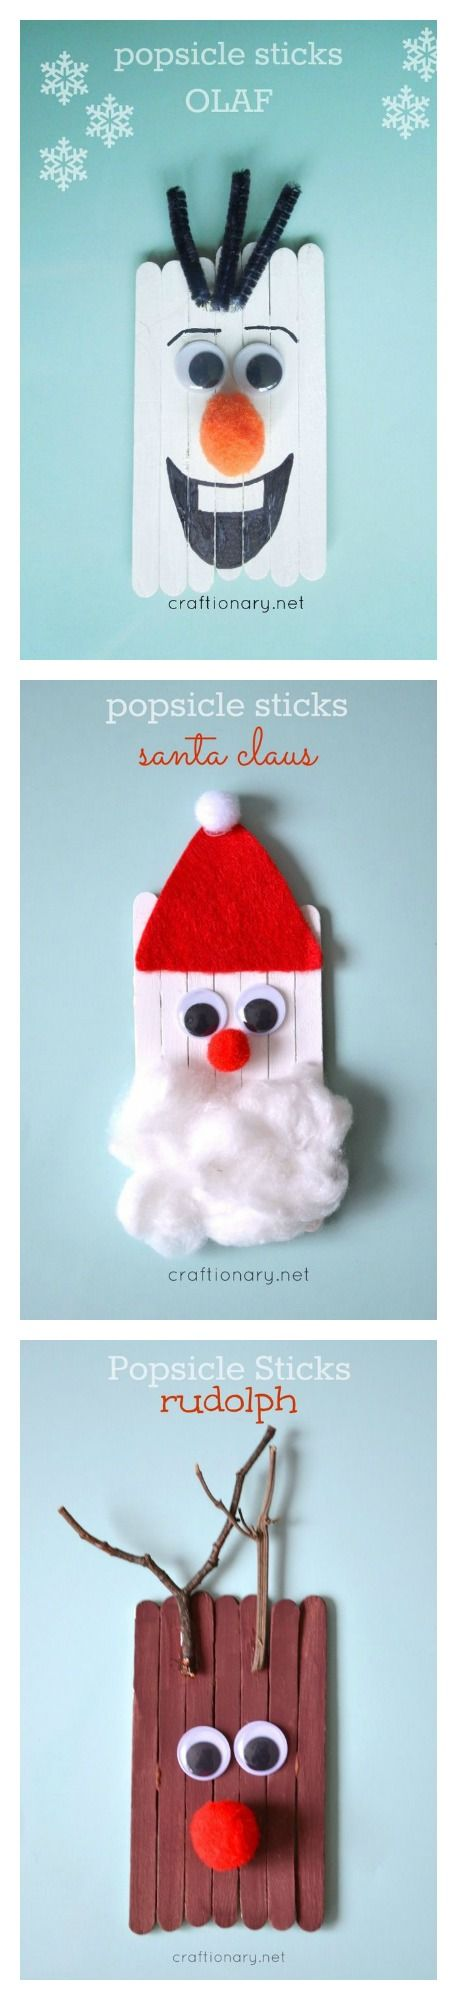 Christmas Craft Ideas For Kids Pinterest Part - 25: Preschool Crafts For Kids*: Nativity Popsicle Stick Christmas Ornament Craft  | Navidad Al Estilo Grinch | Pinterest | Christmas Ornament Crafts, ...